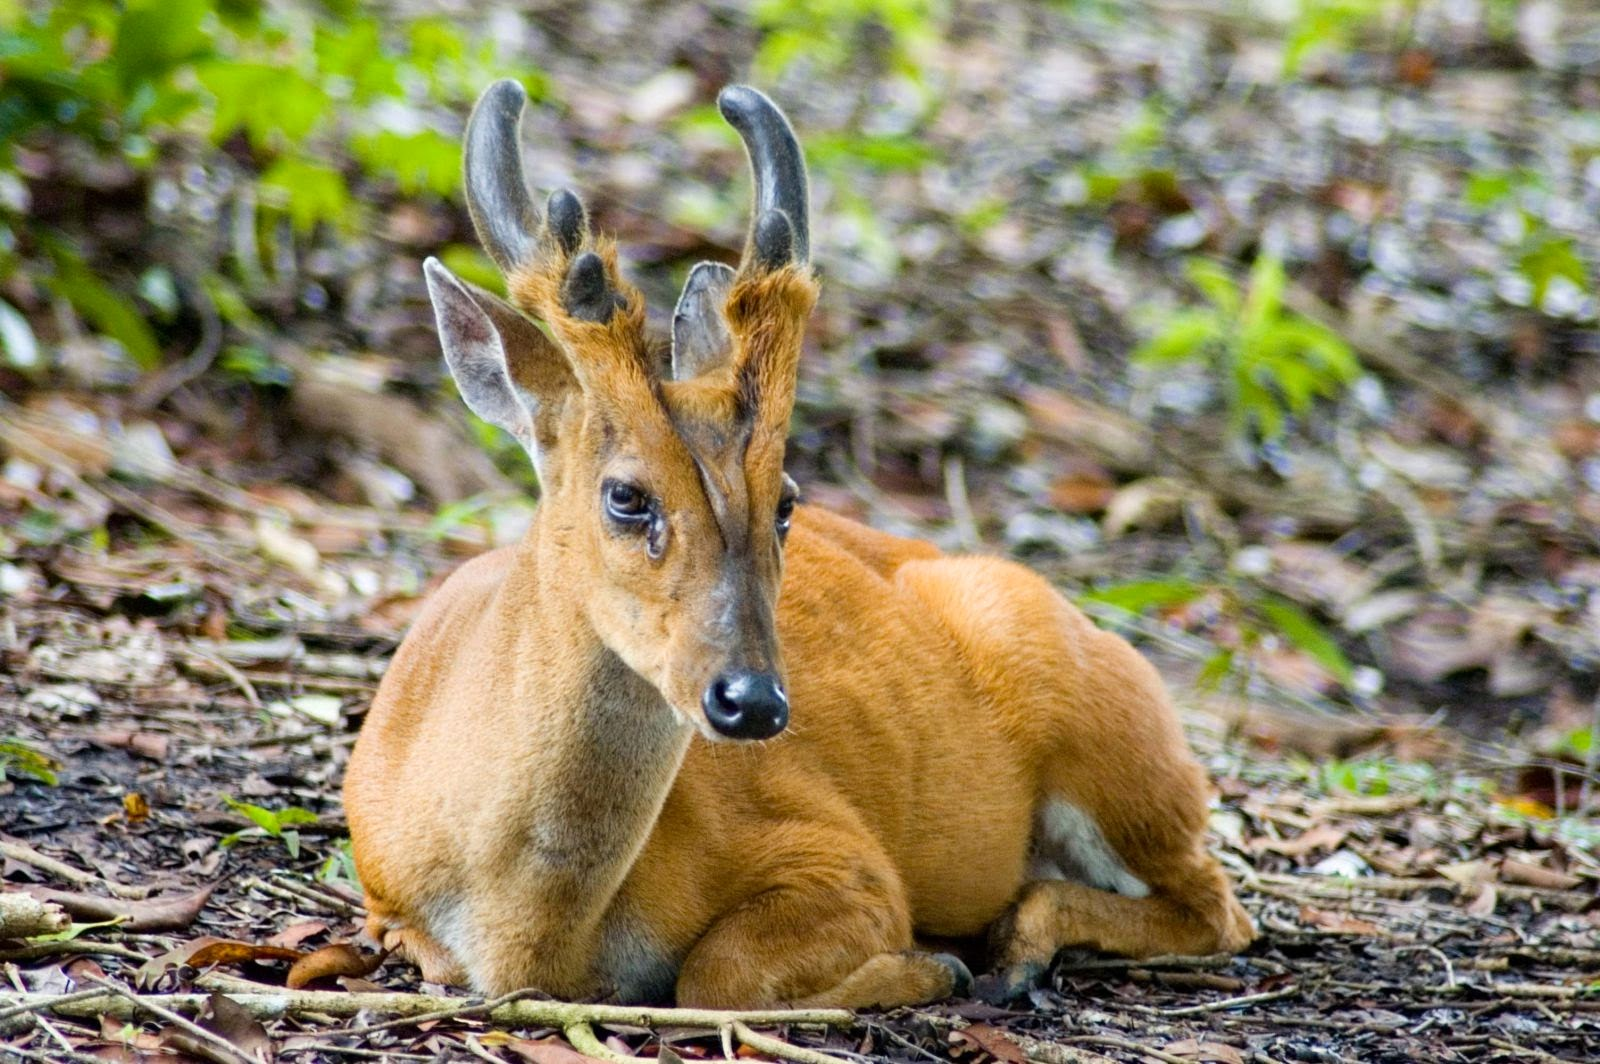 Animals You May Not Have Known Existed - Southern Red Muntjac